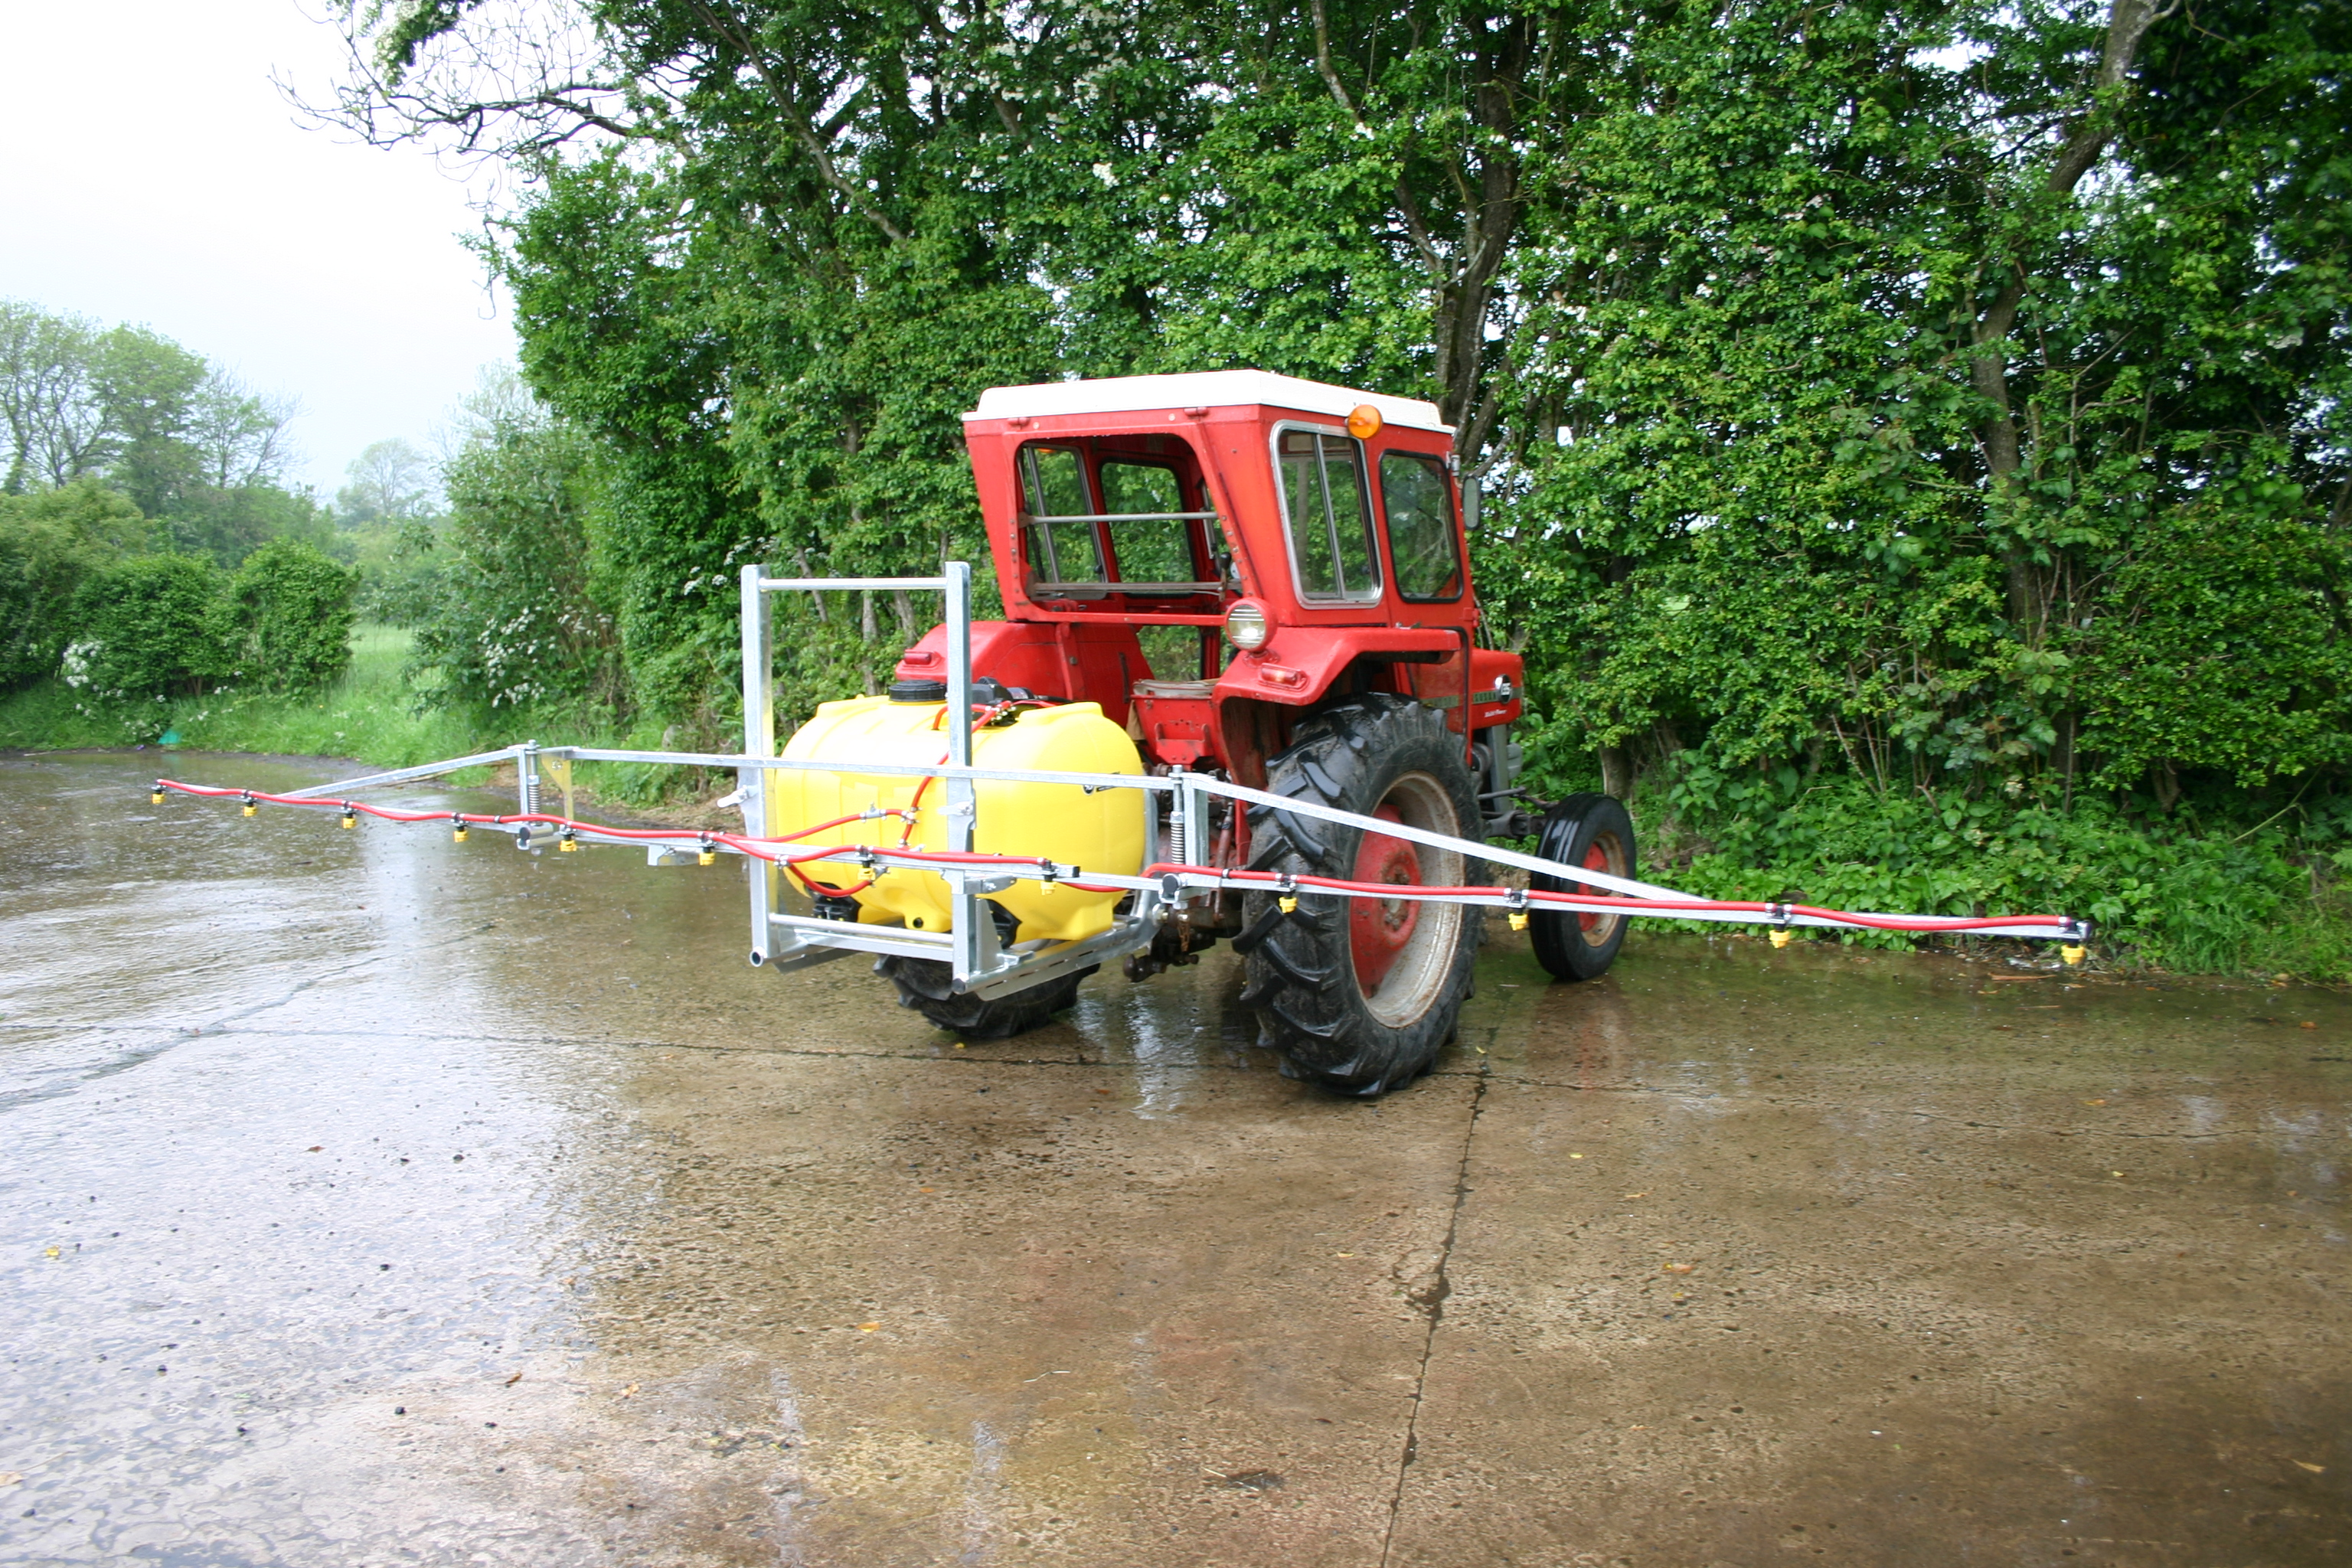 Boom Sprayers For Tractors : Tractor sprayers made in uk ireland for effective weed control